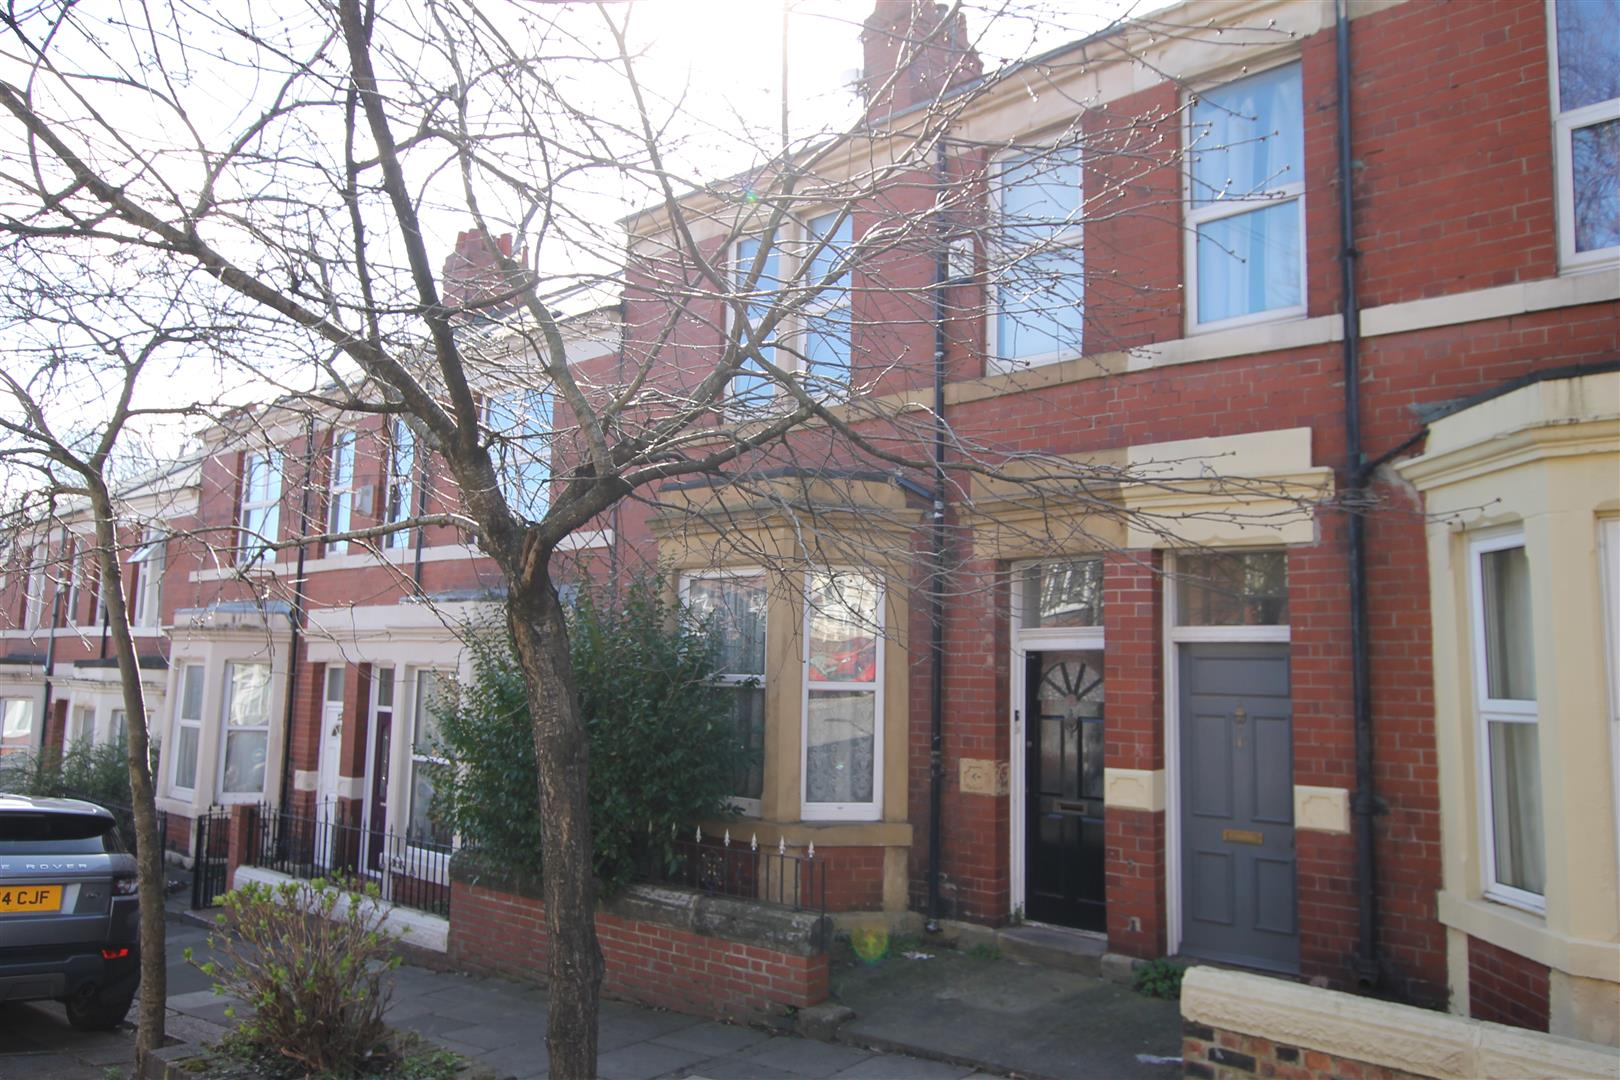 Brandon Grove Newcastle Upon Tyne, 4 Bedrooms  House - mid terrace ,Sold (STC)